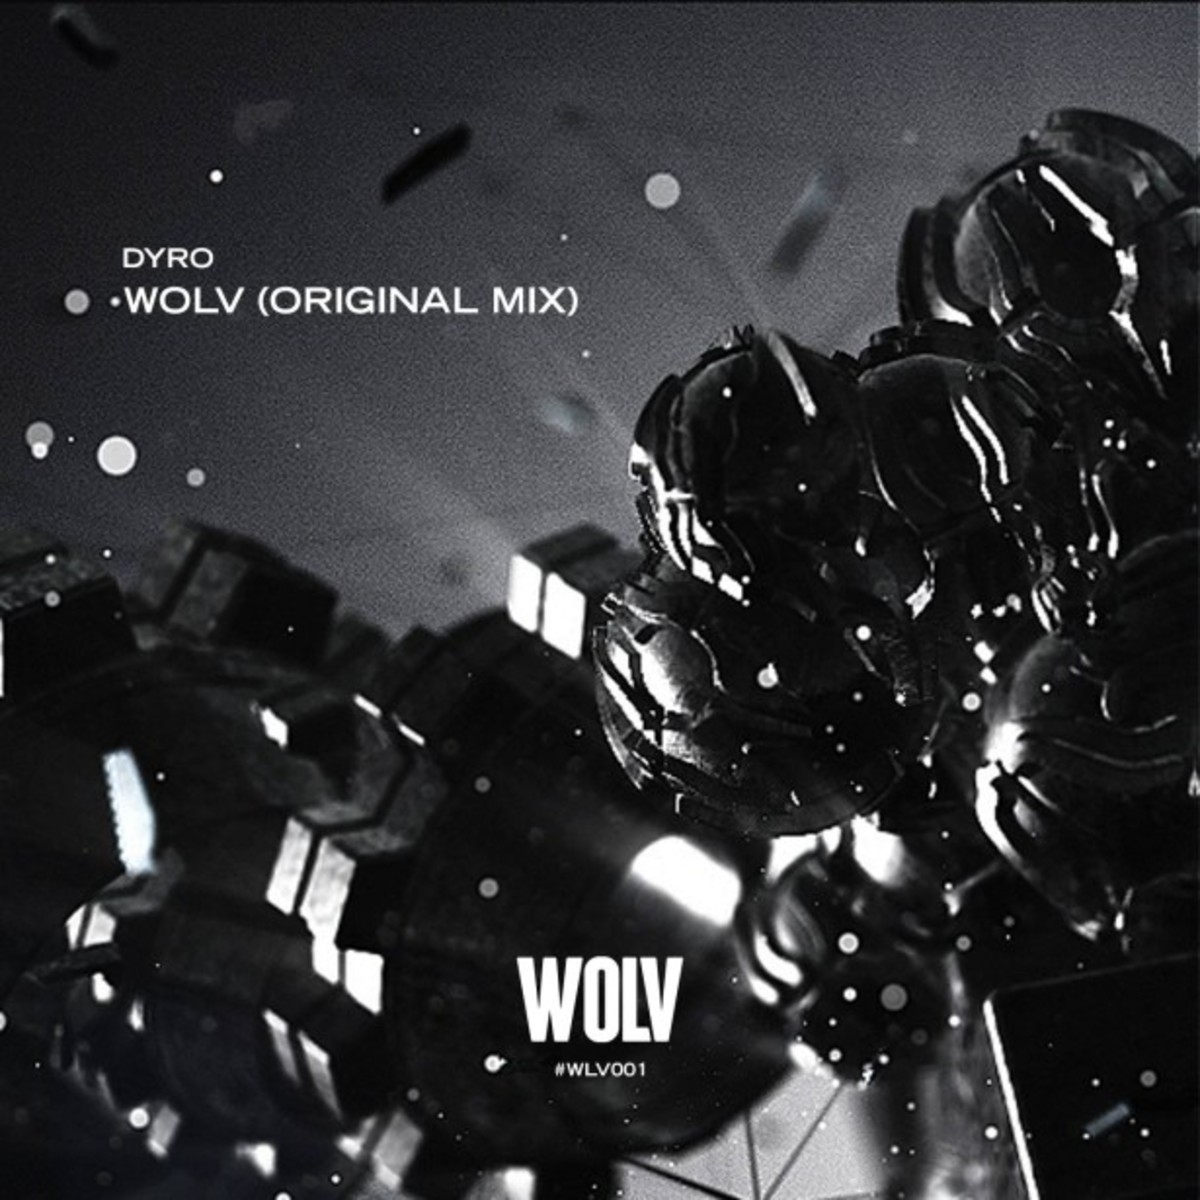 Dyro - WOLV (New single and label)